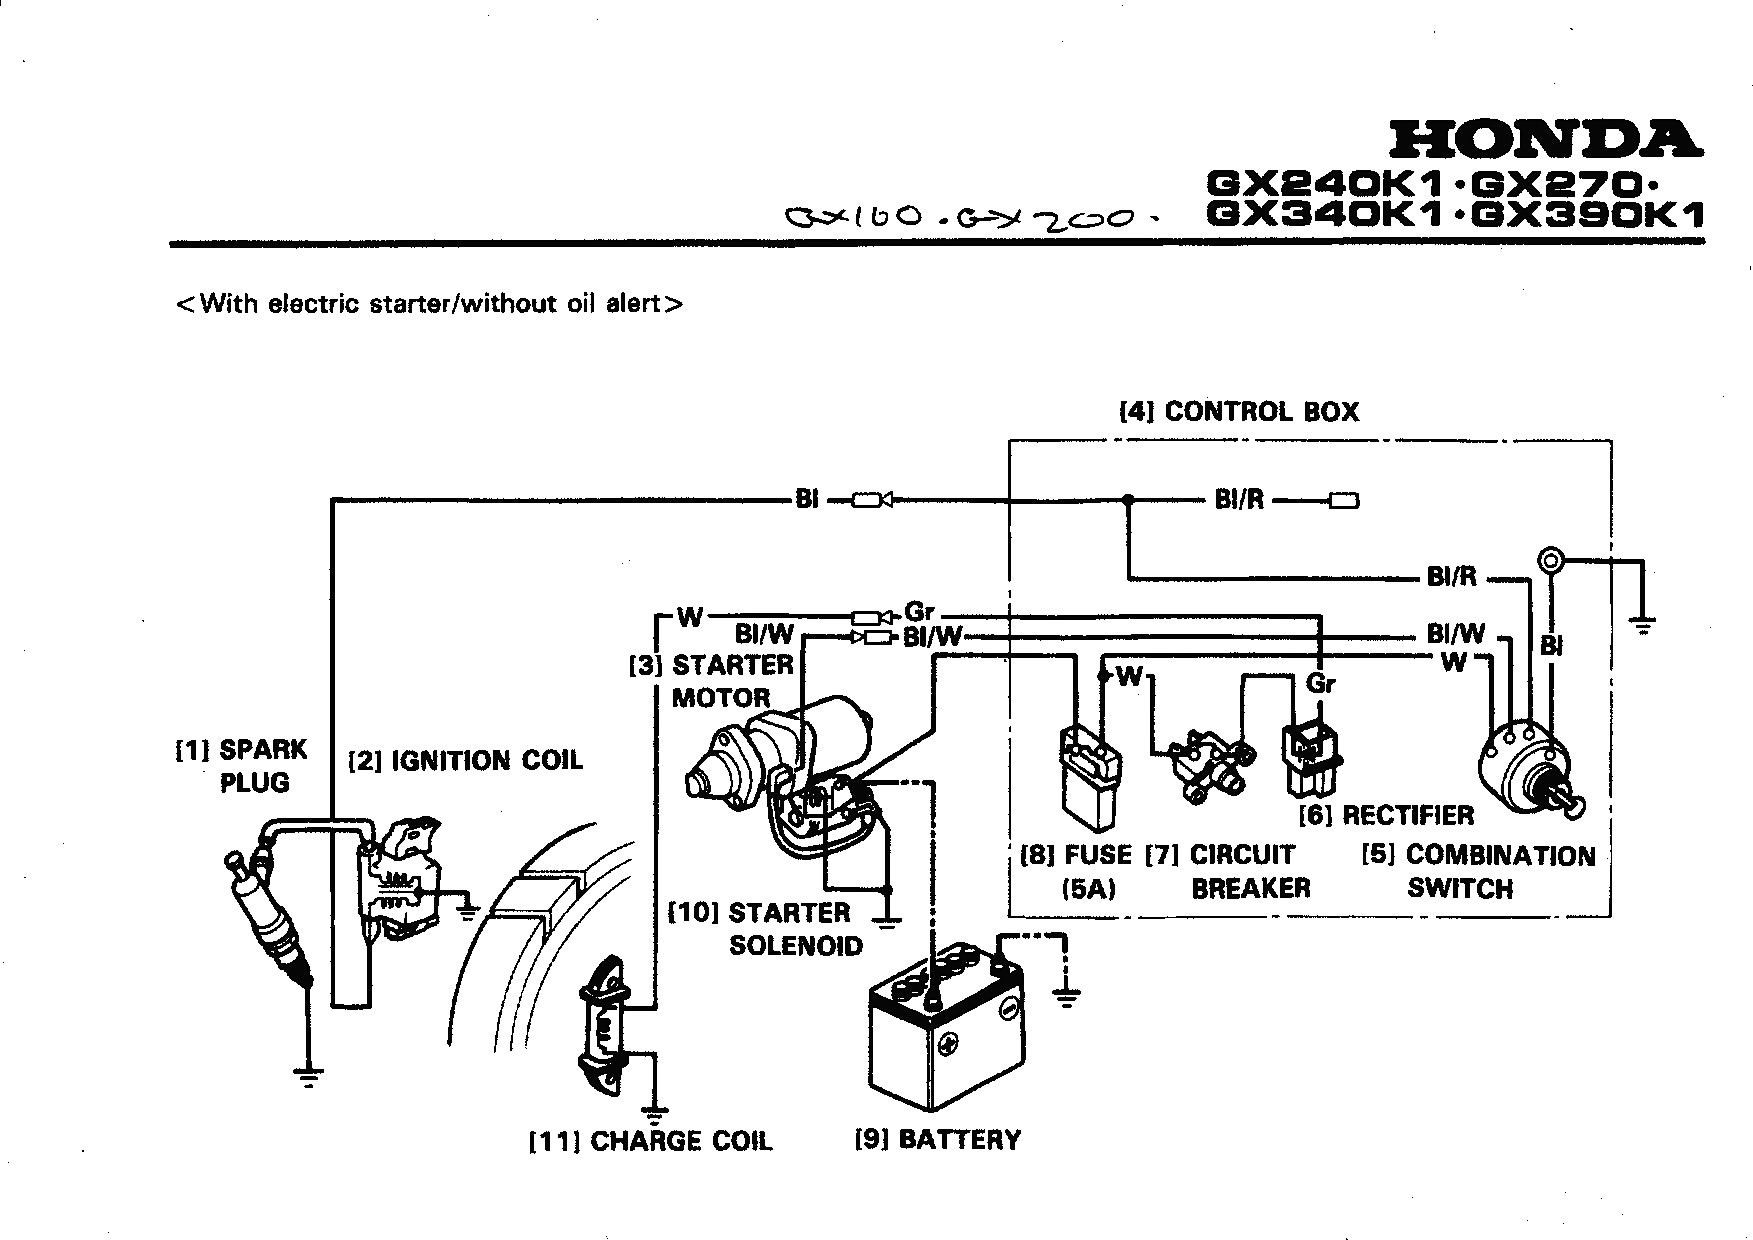 small resolution of 62 et ignition switch wiring diagram control wiring diagram 62 et ignition switch wiring diagram